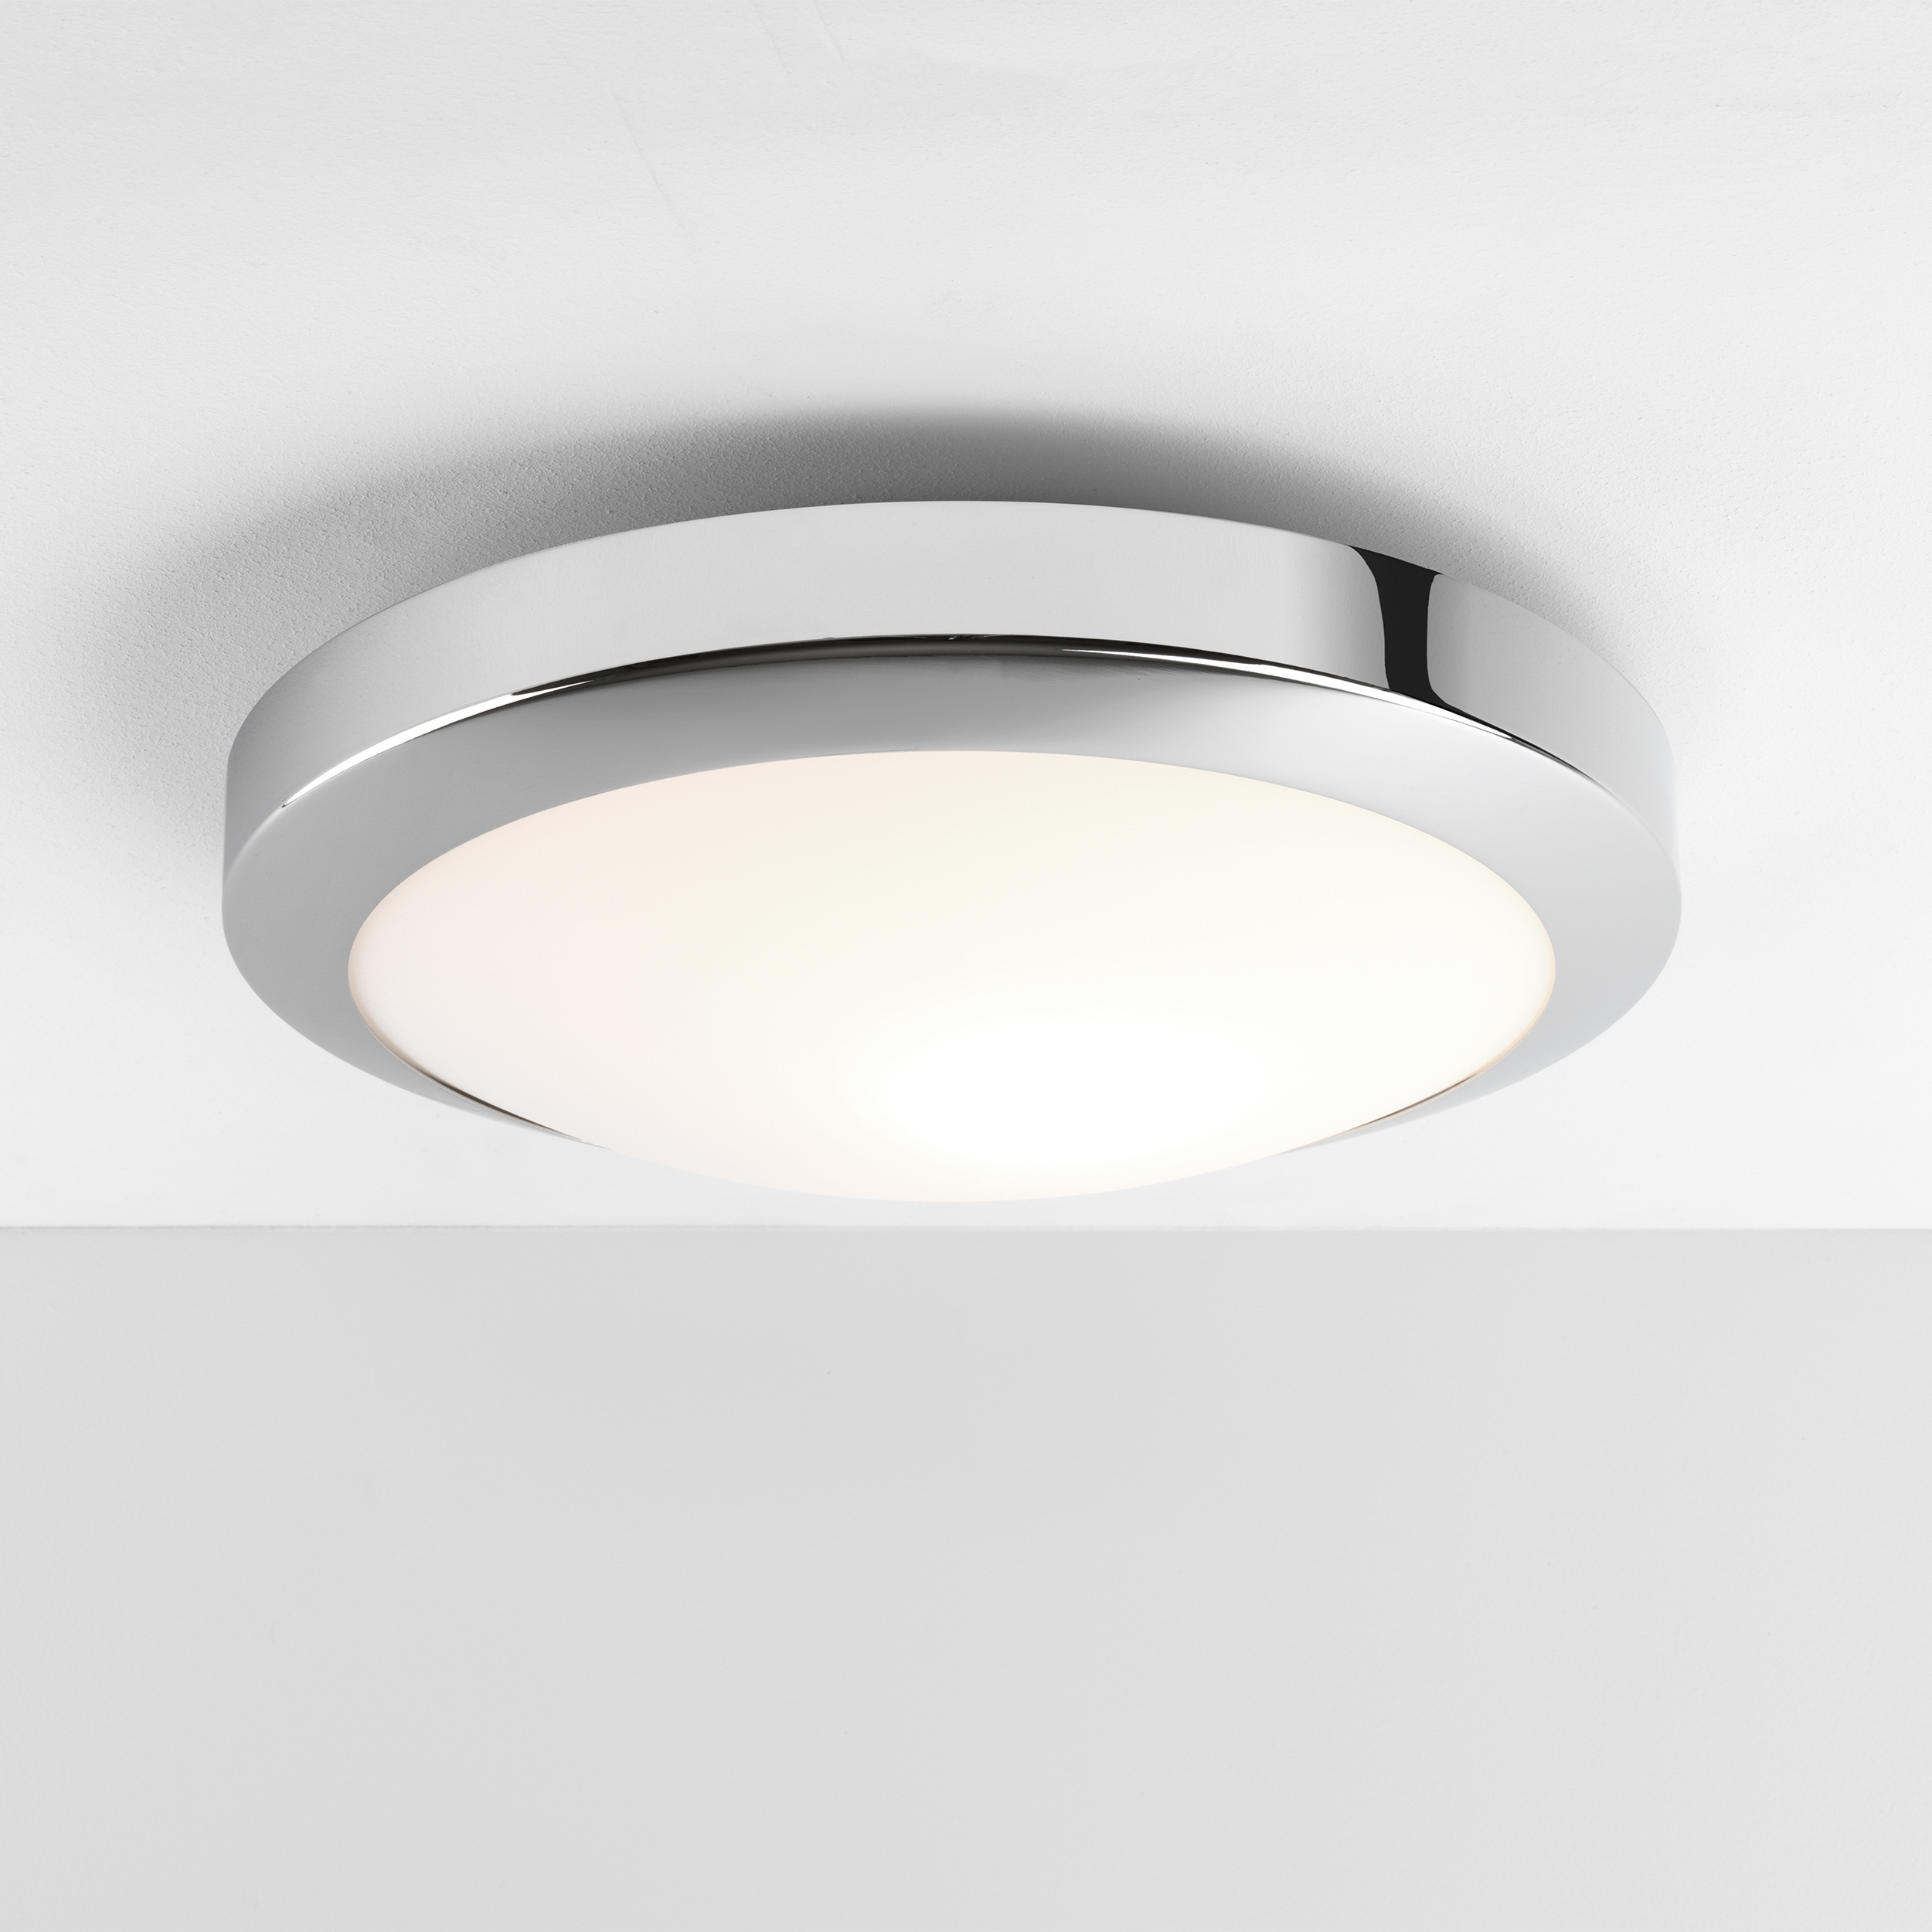 Astro dakota LED round bathroom ceiling light 16W polished chrome IP44 300mm